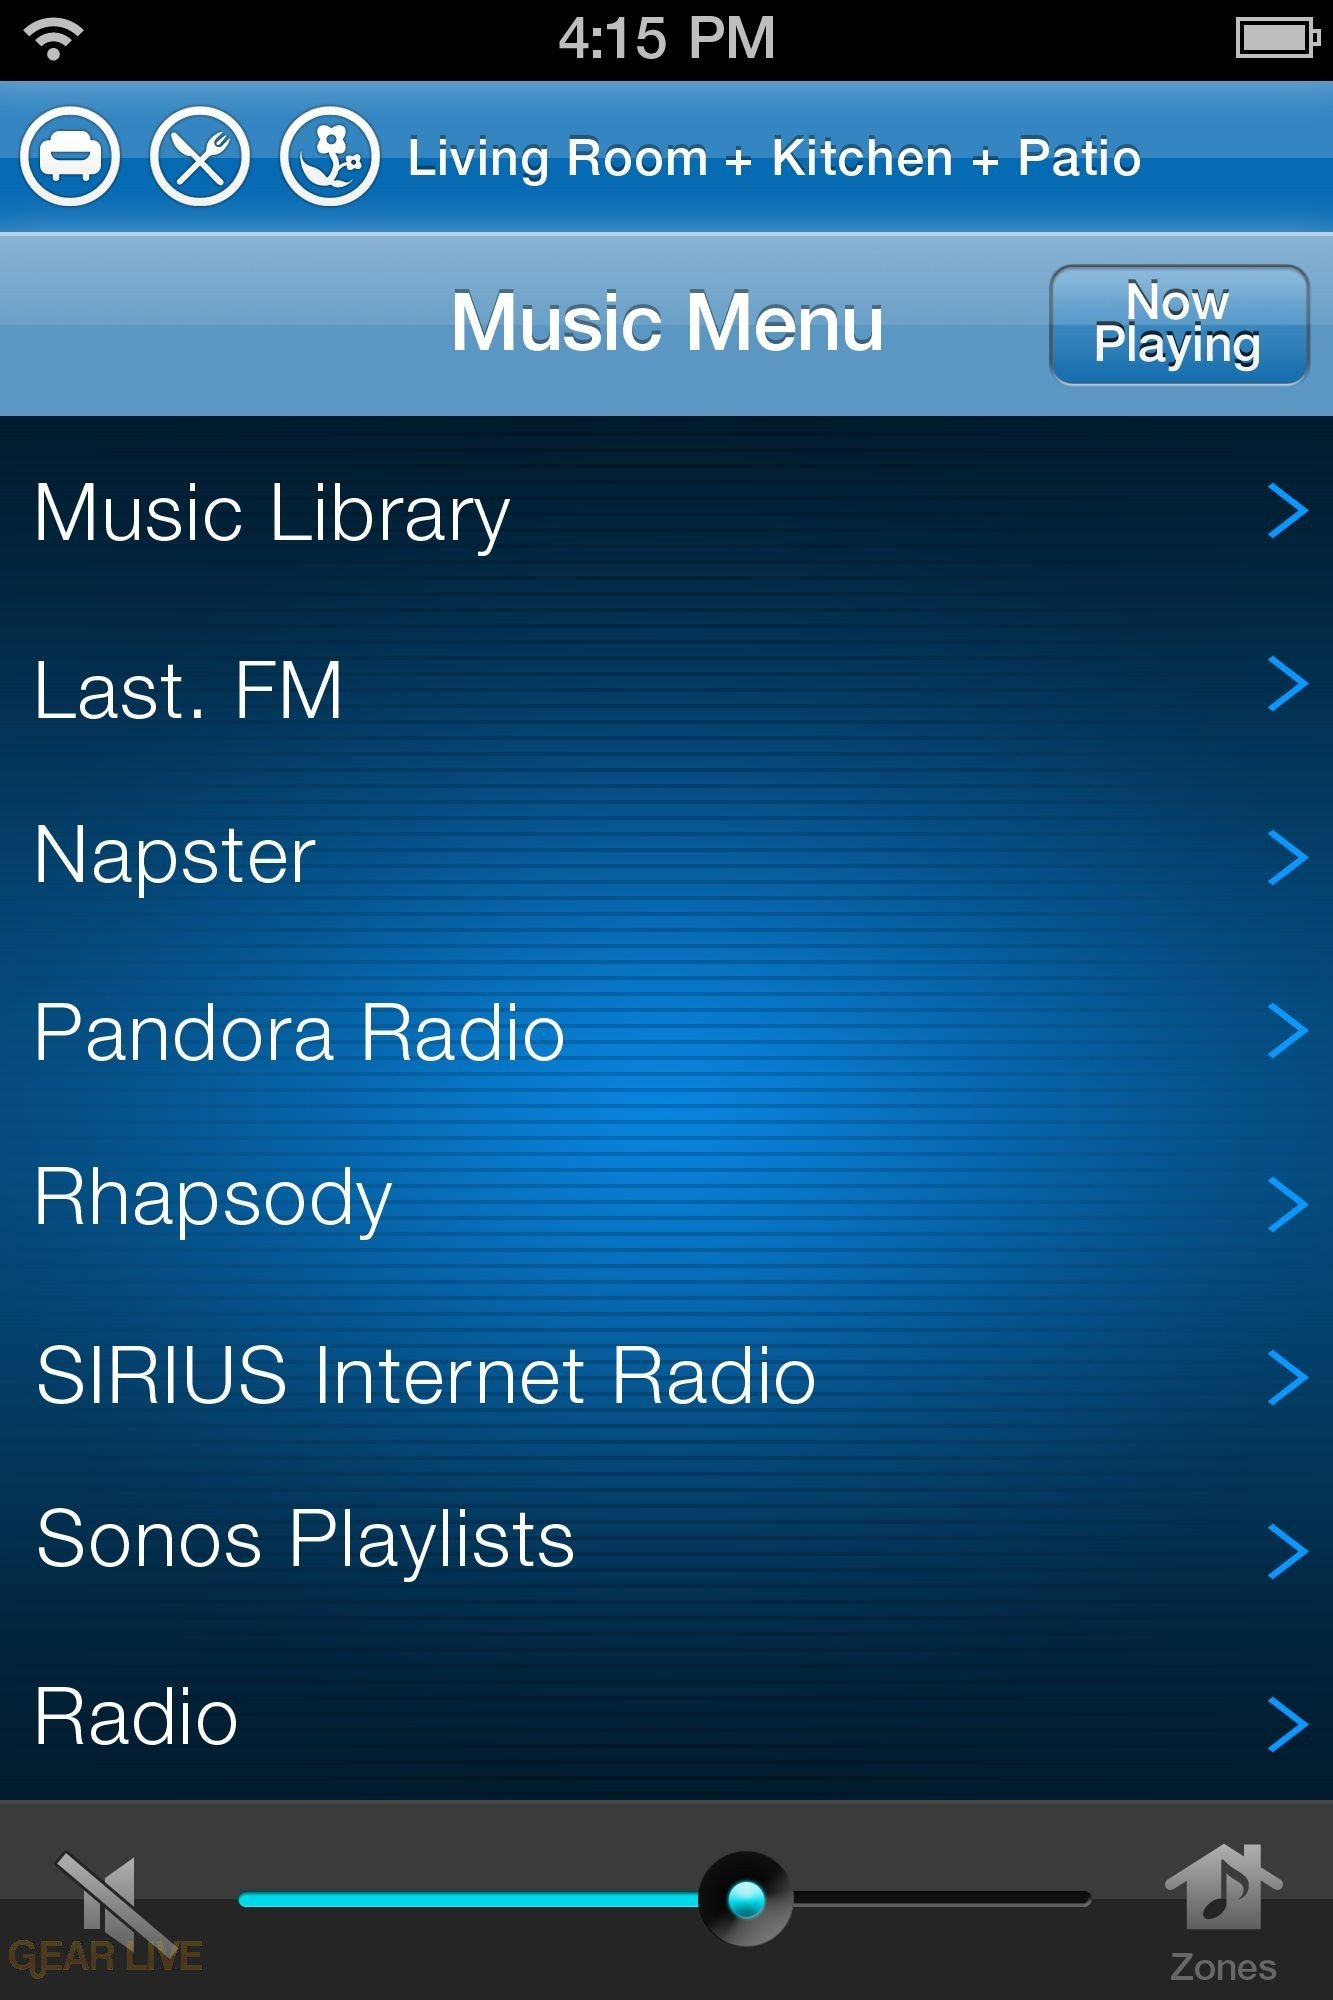 Sonos iPhone: List View